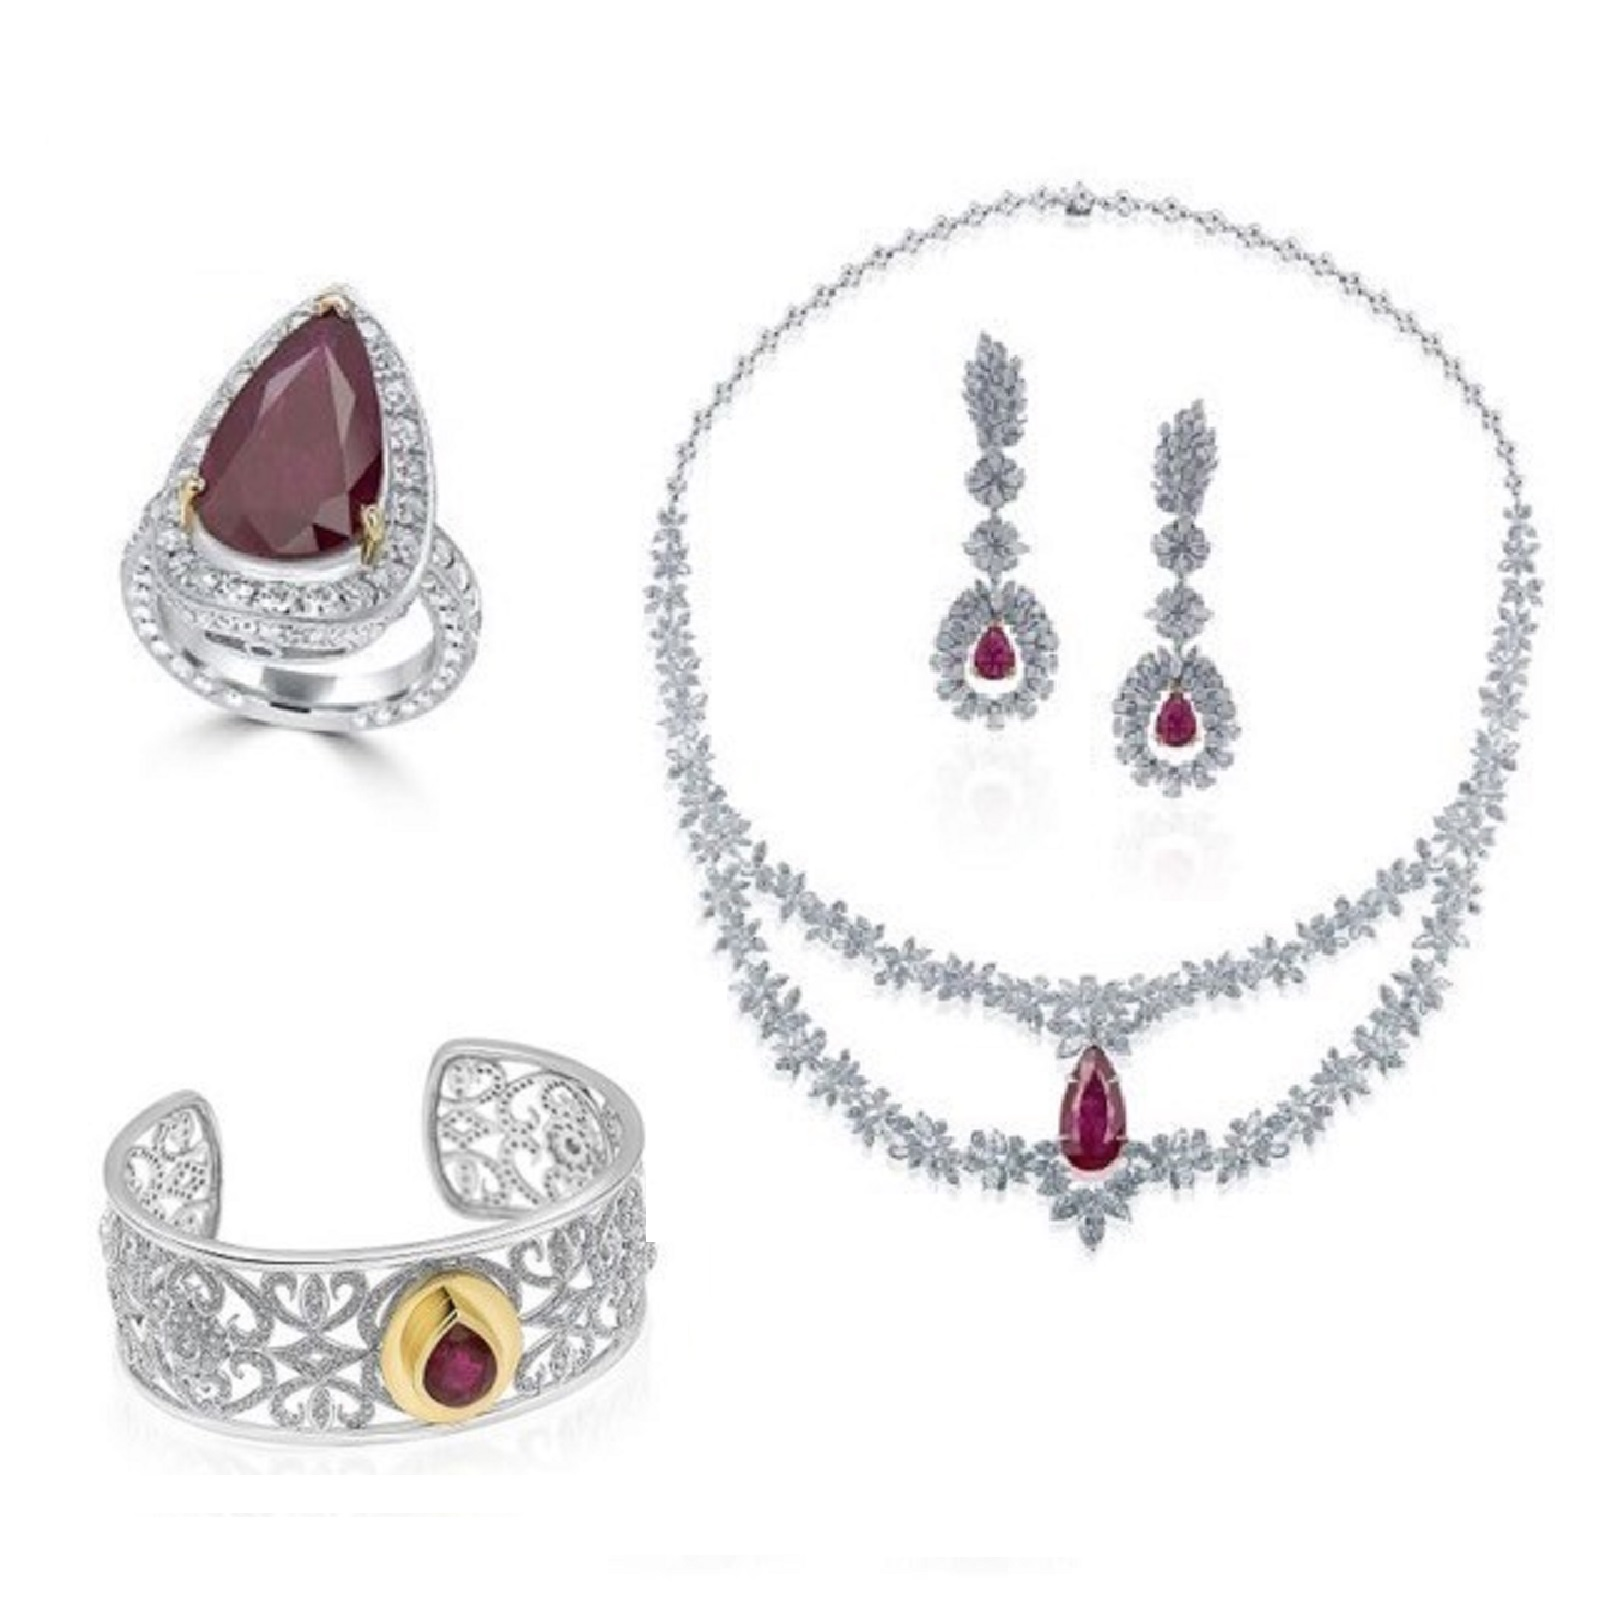 Ruby & Diamond Ring, Necklace, Bracelet & Earrings Set (Ruby Weight – 29.91 carats)